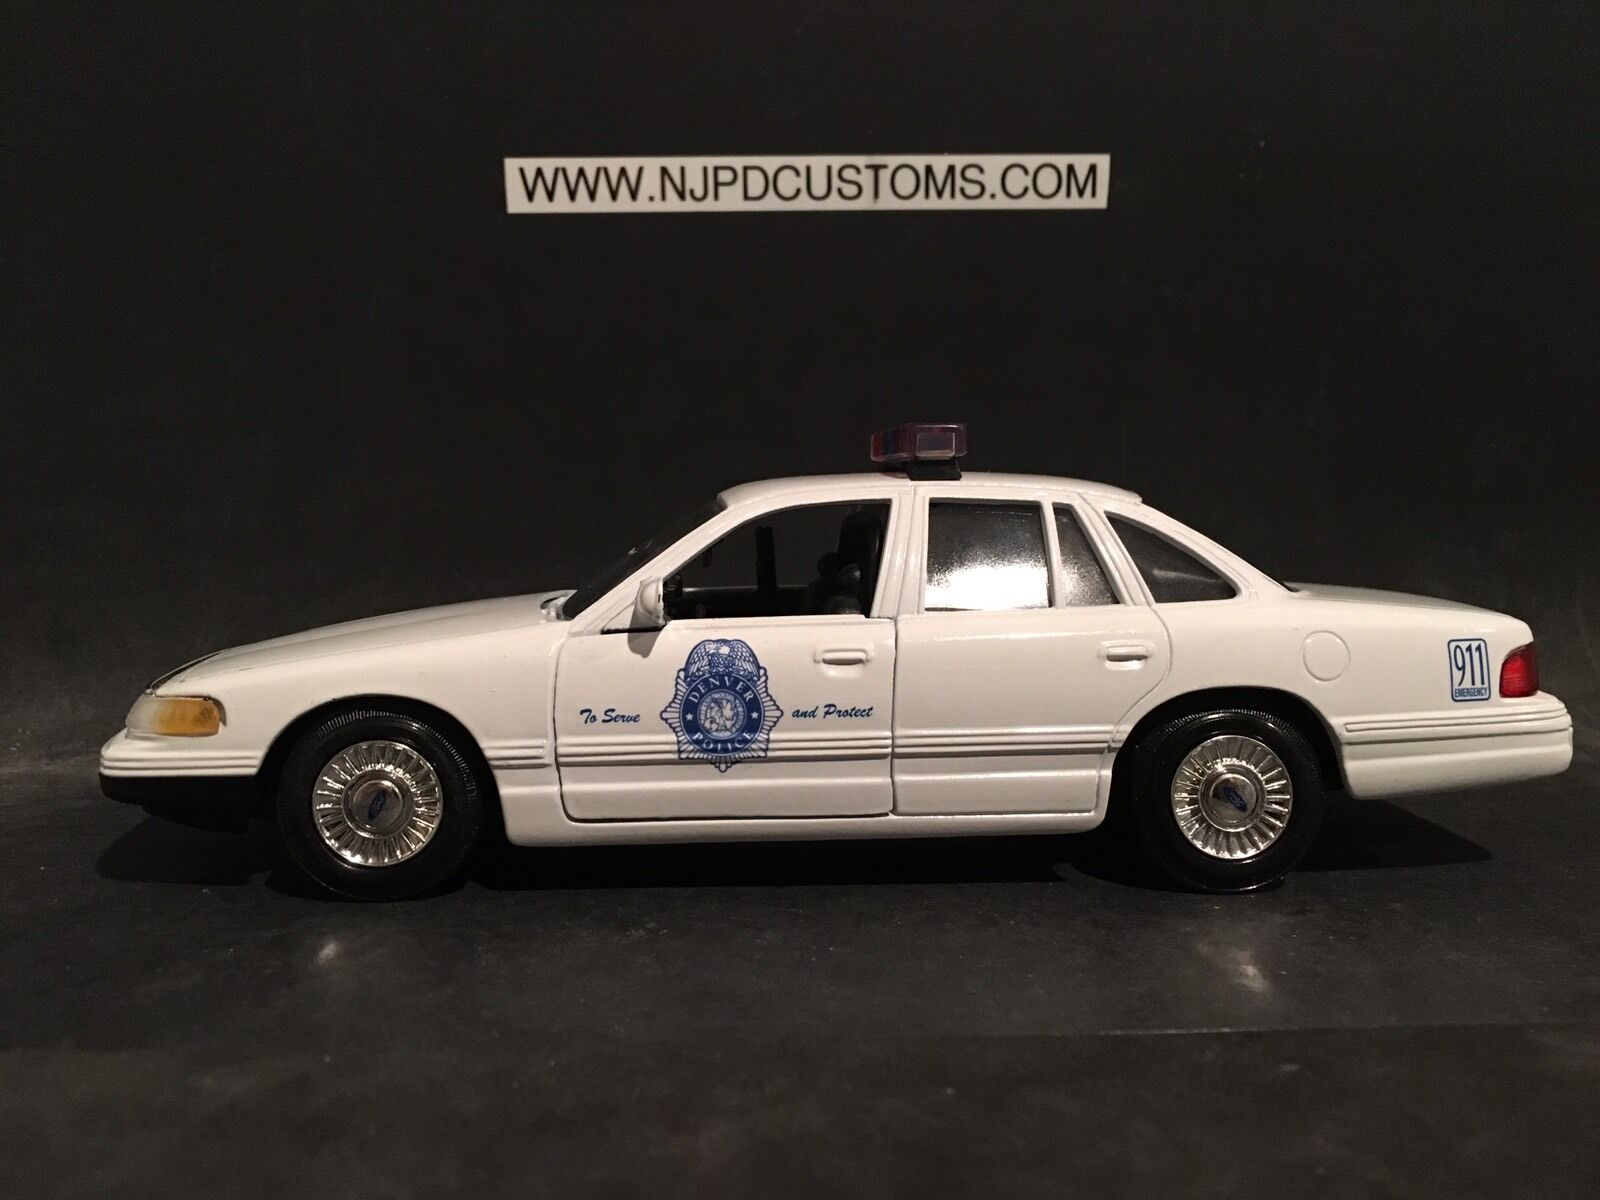 Denver , CO Police 1 24 Scale Ford Crown Victoria Police Car (1997 Model)